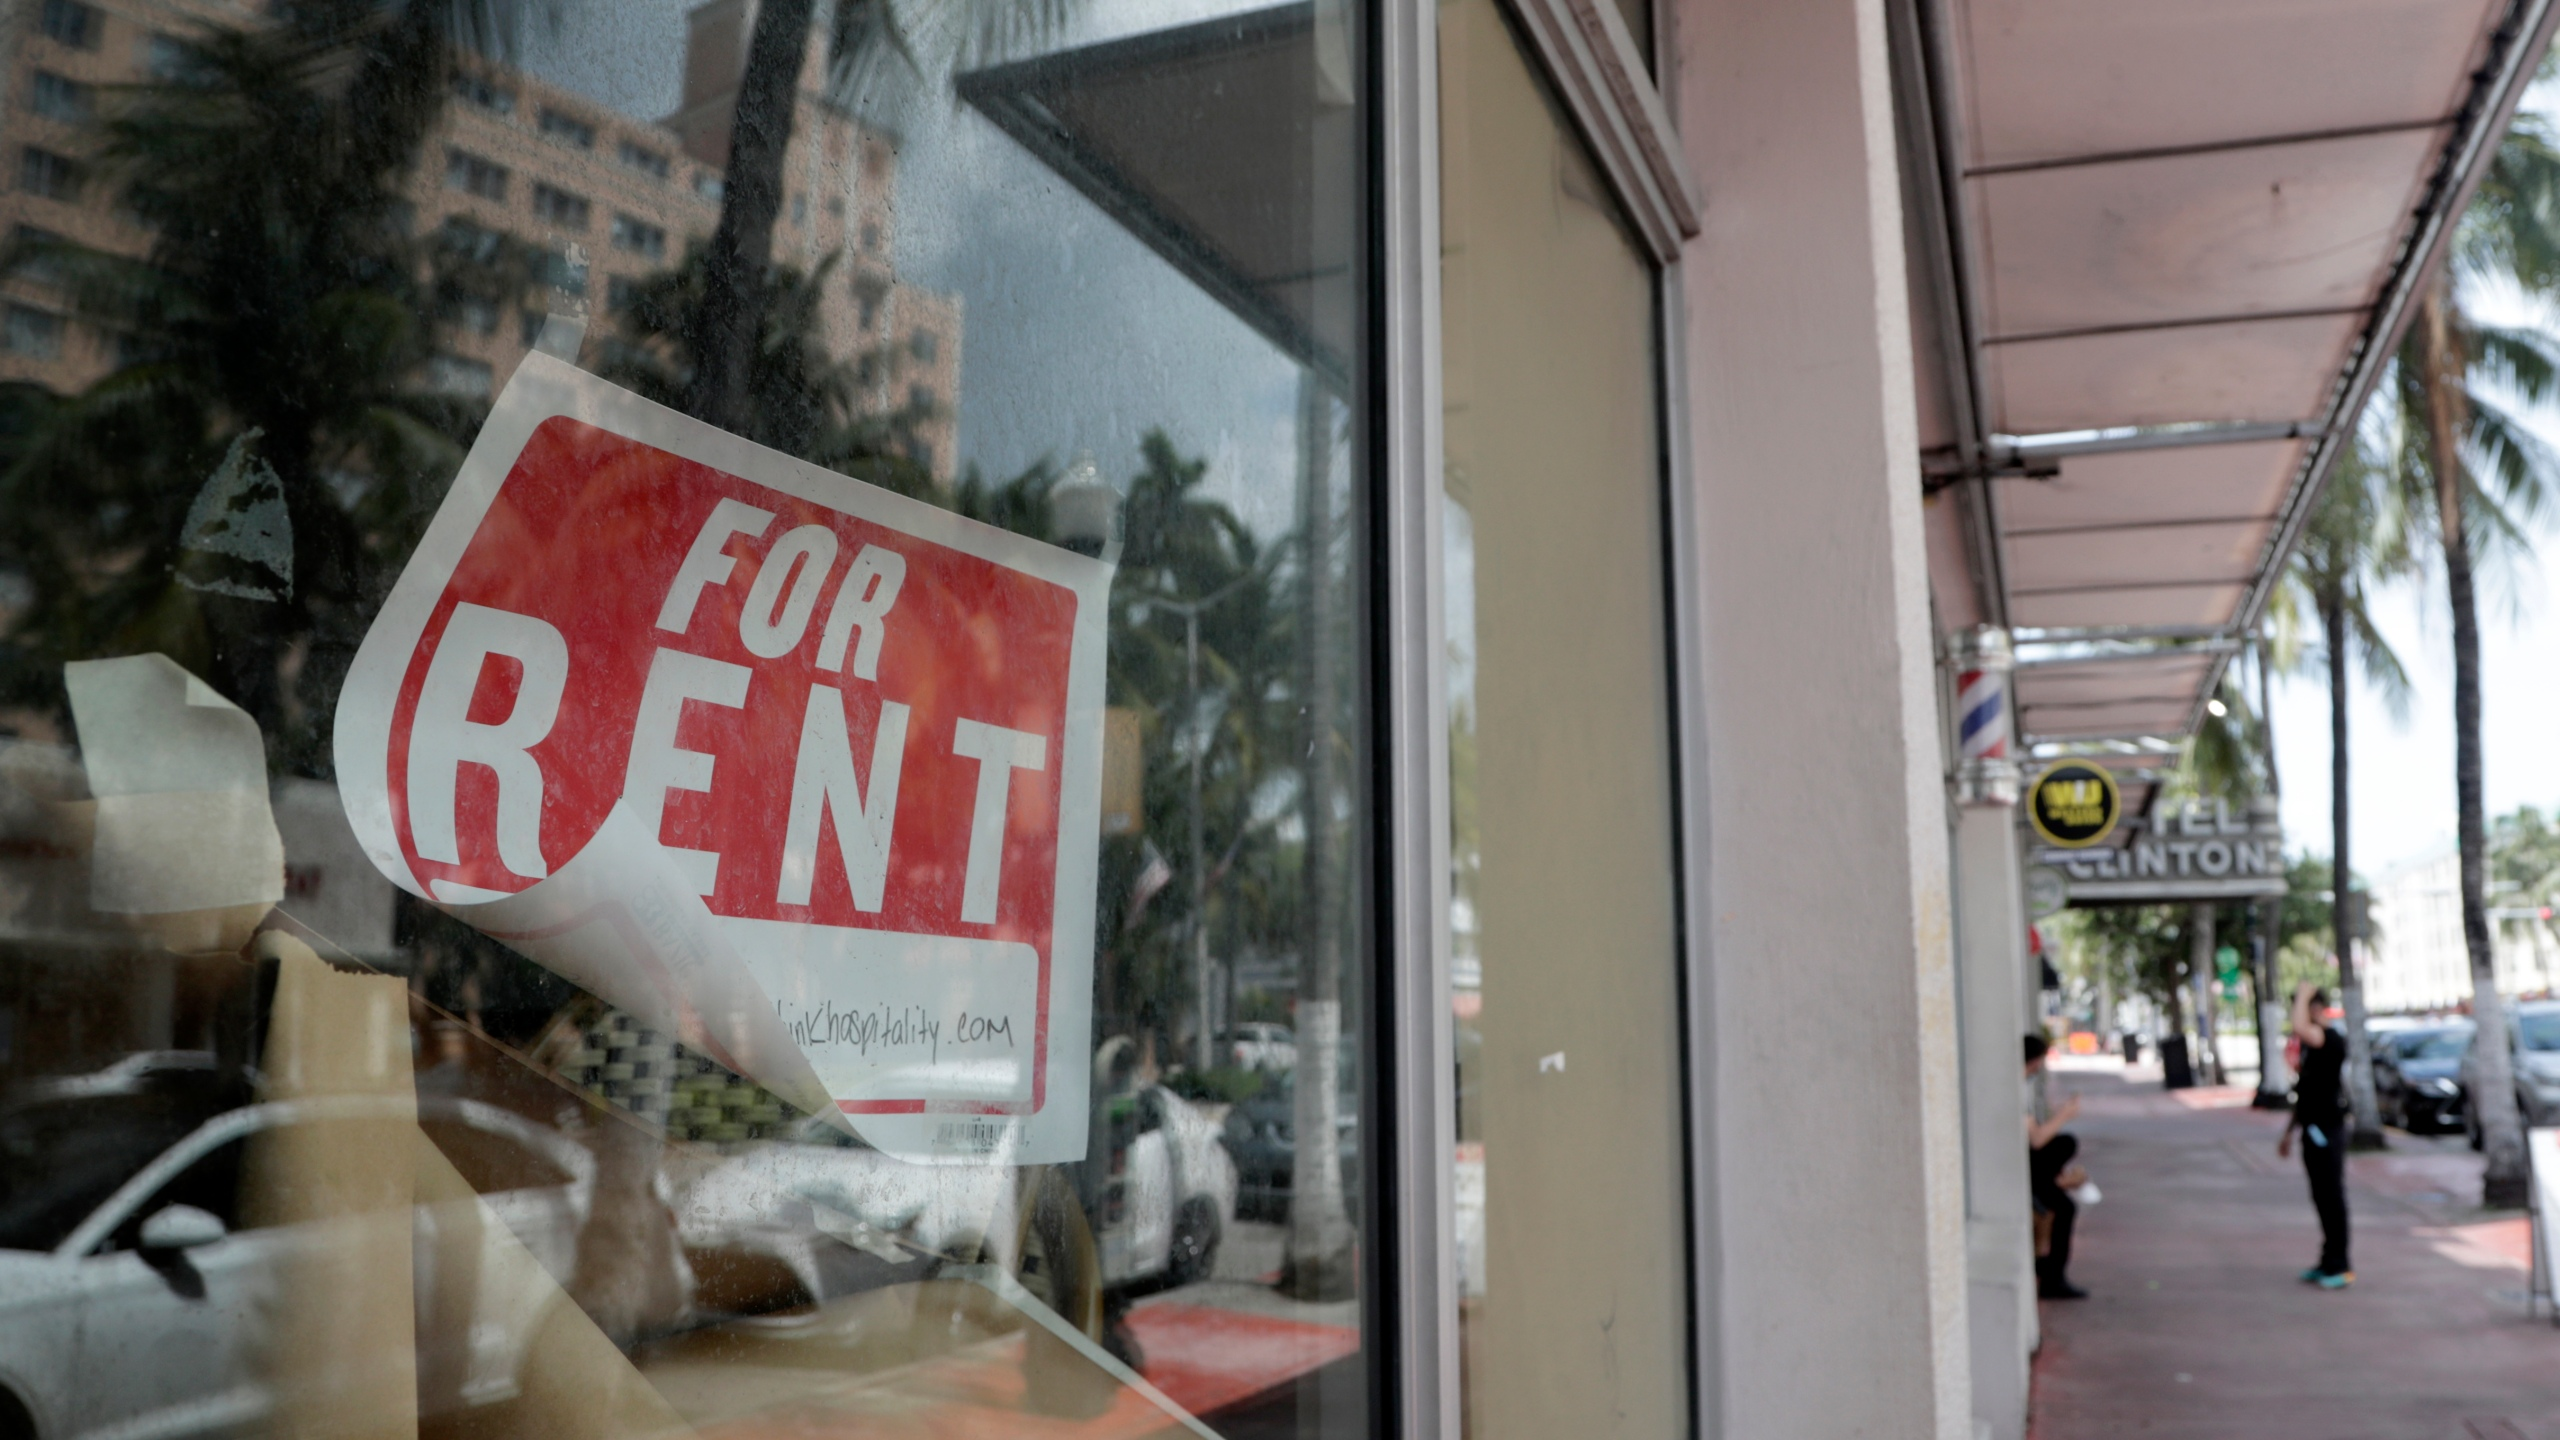 In this July 13, 2020 file photo, a For Rent sign hangs on a closed shop during the coronavirus pandemic in Miami Beach, Fla. (AP Photo/Lynne Sladky)